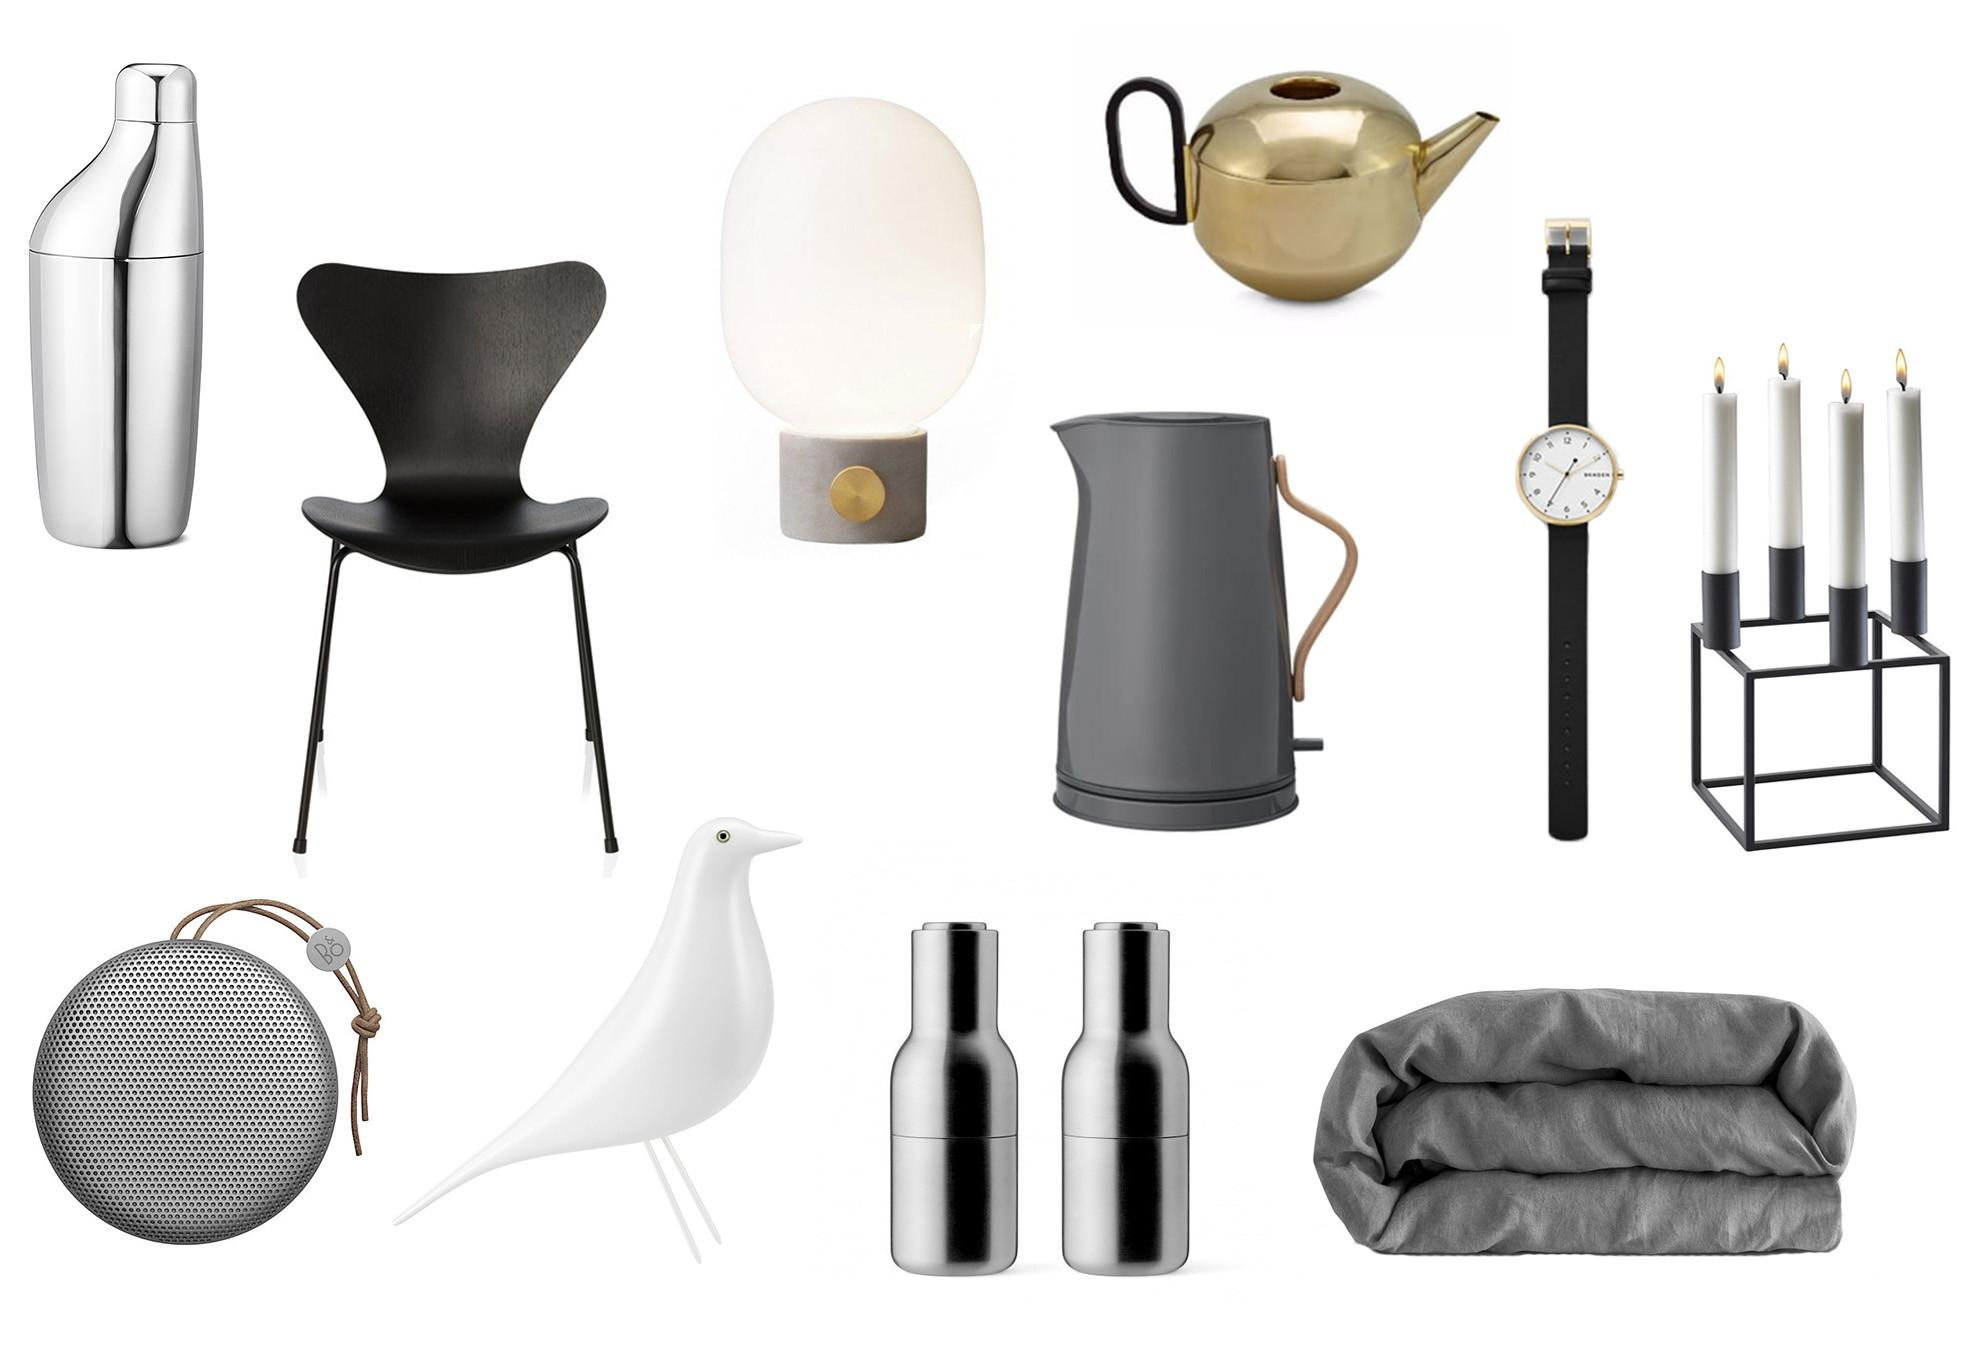 Csh Festive Gift Guide Over 100 Cate Hill